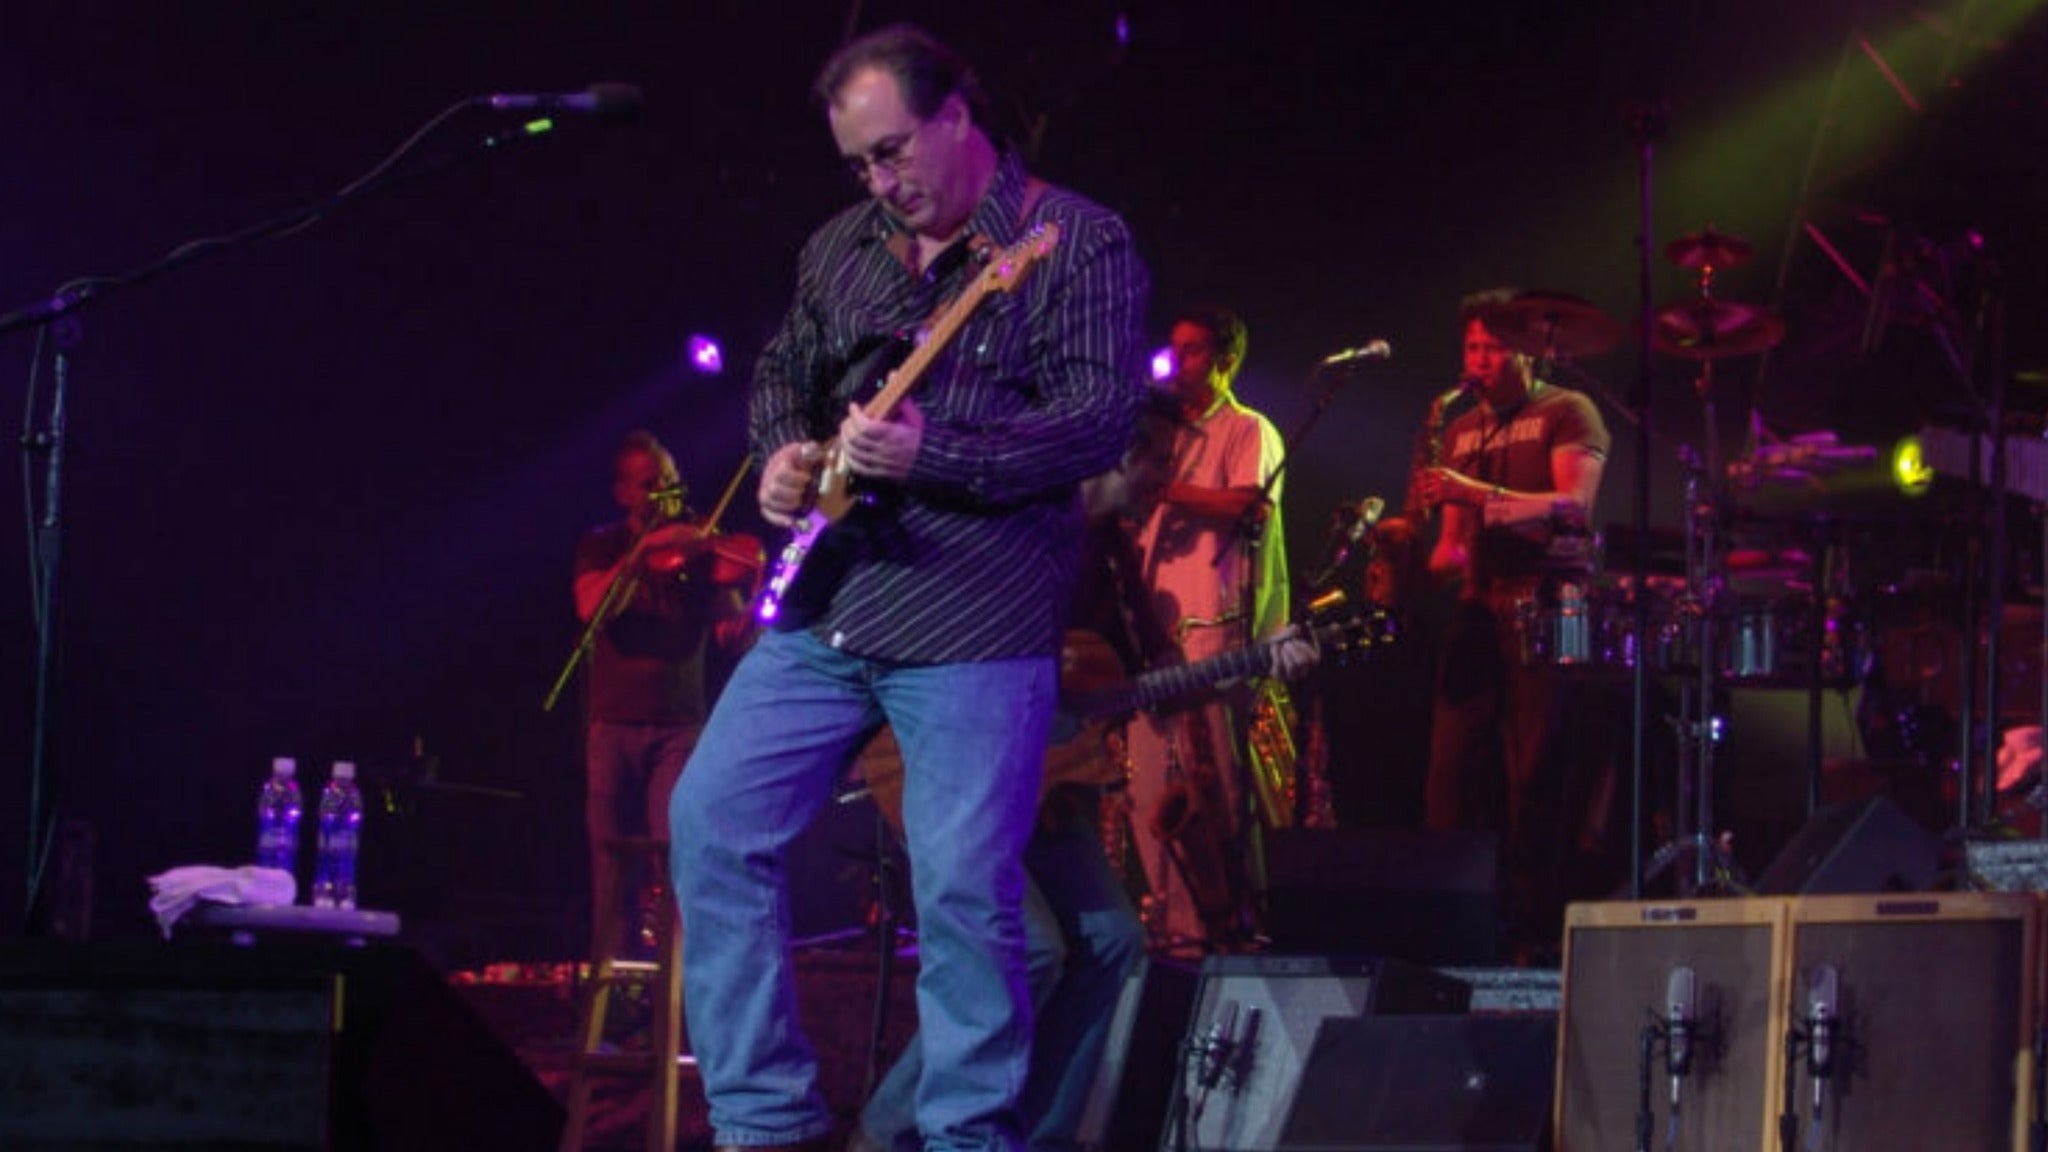 Jim Messina at Bankhead Theater - Livermoor Valley PAC